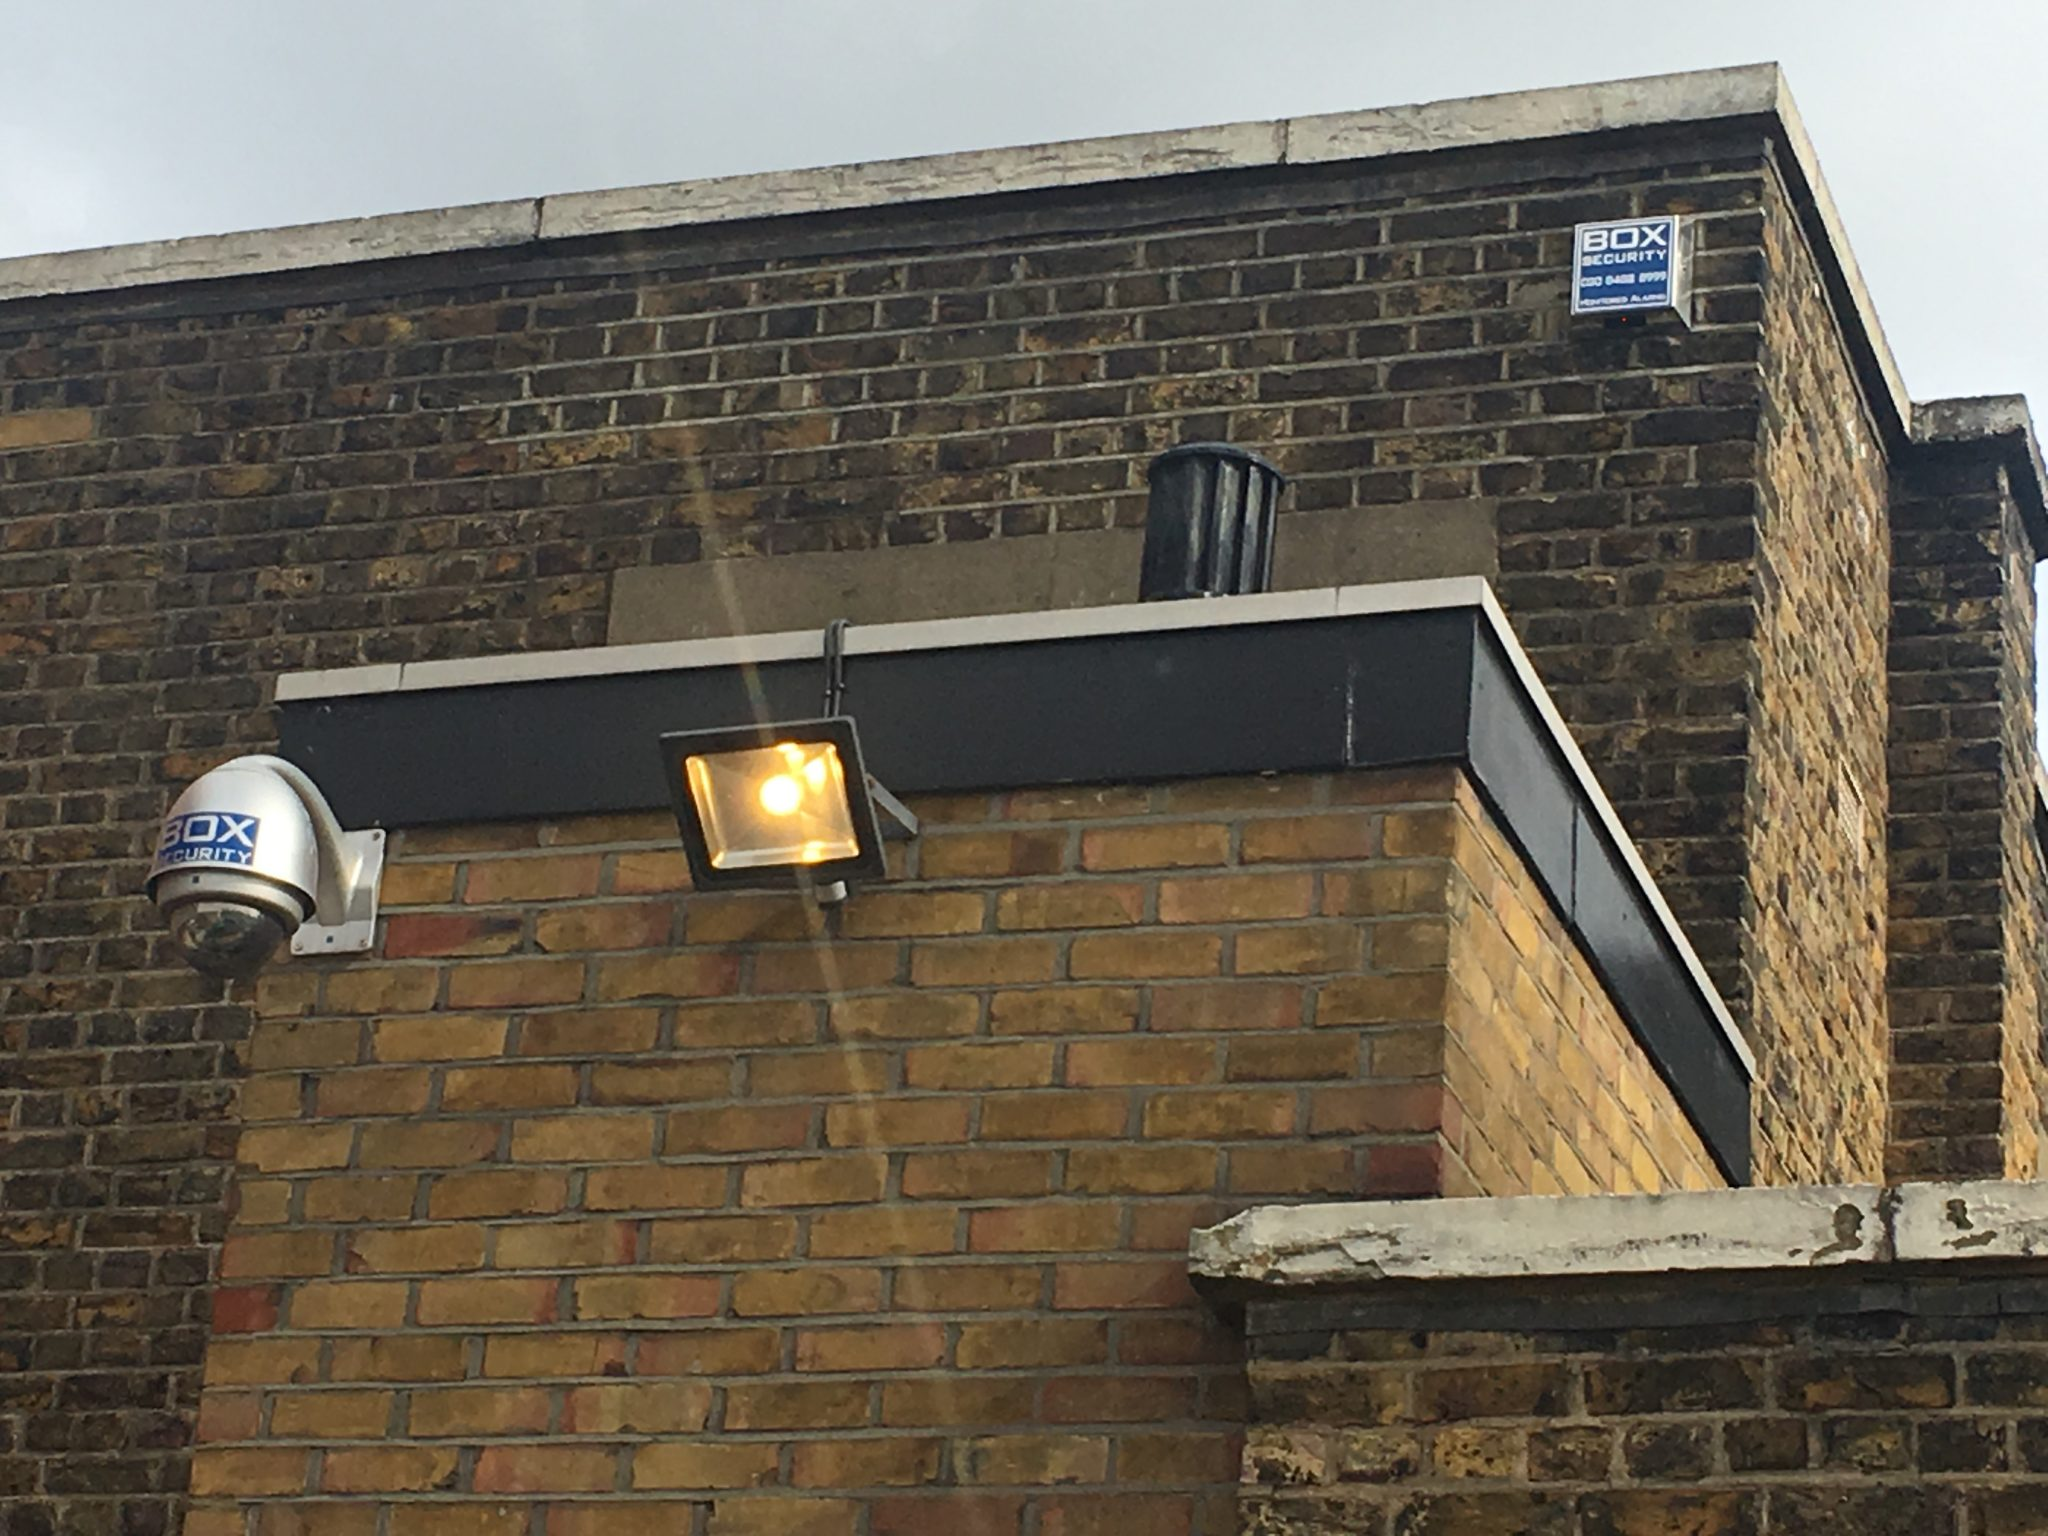 CCTV Fire & Intruder alarm system in Brockley Cross